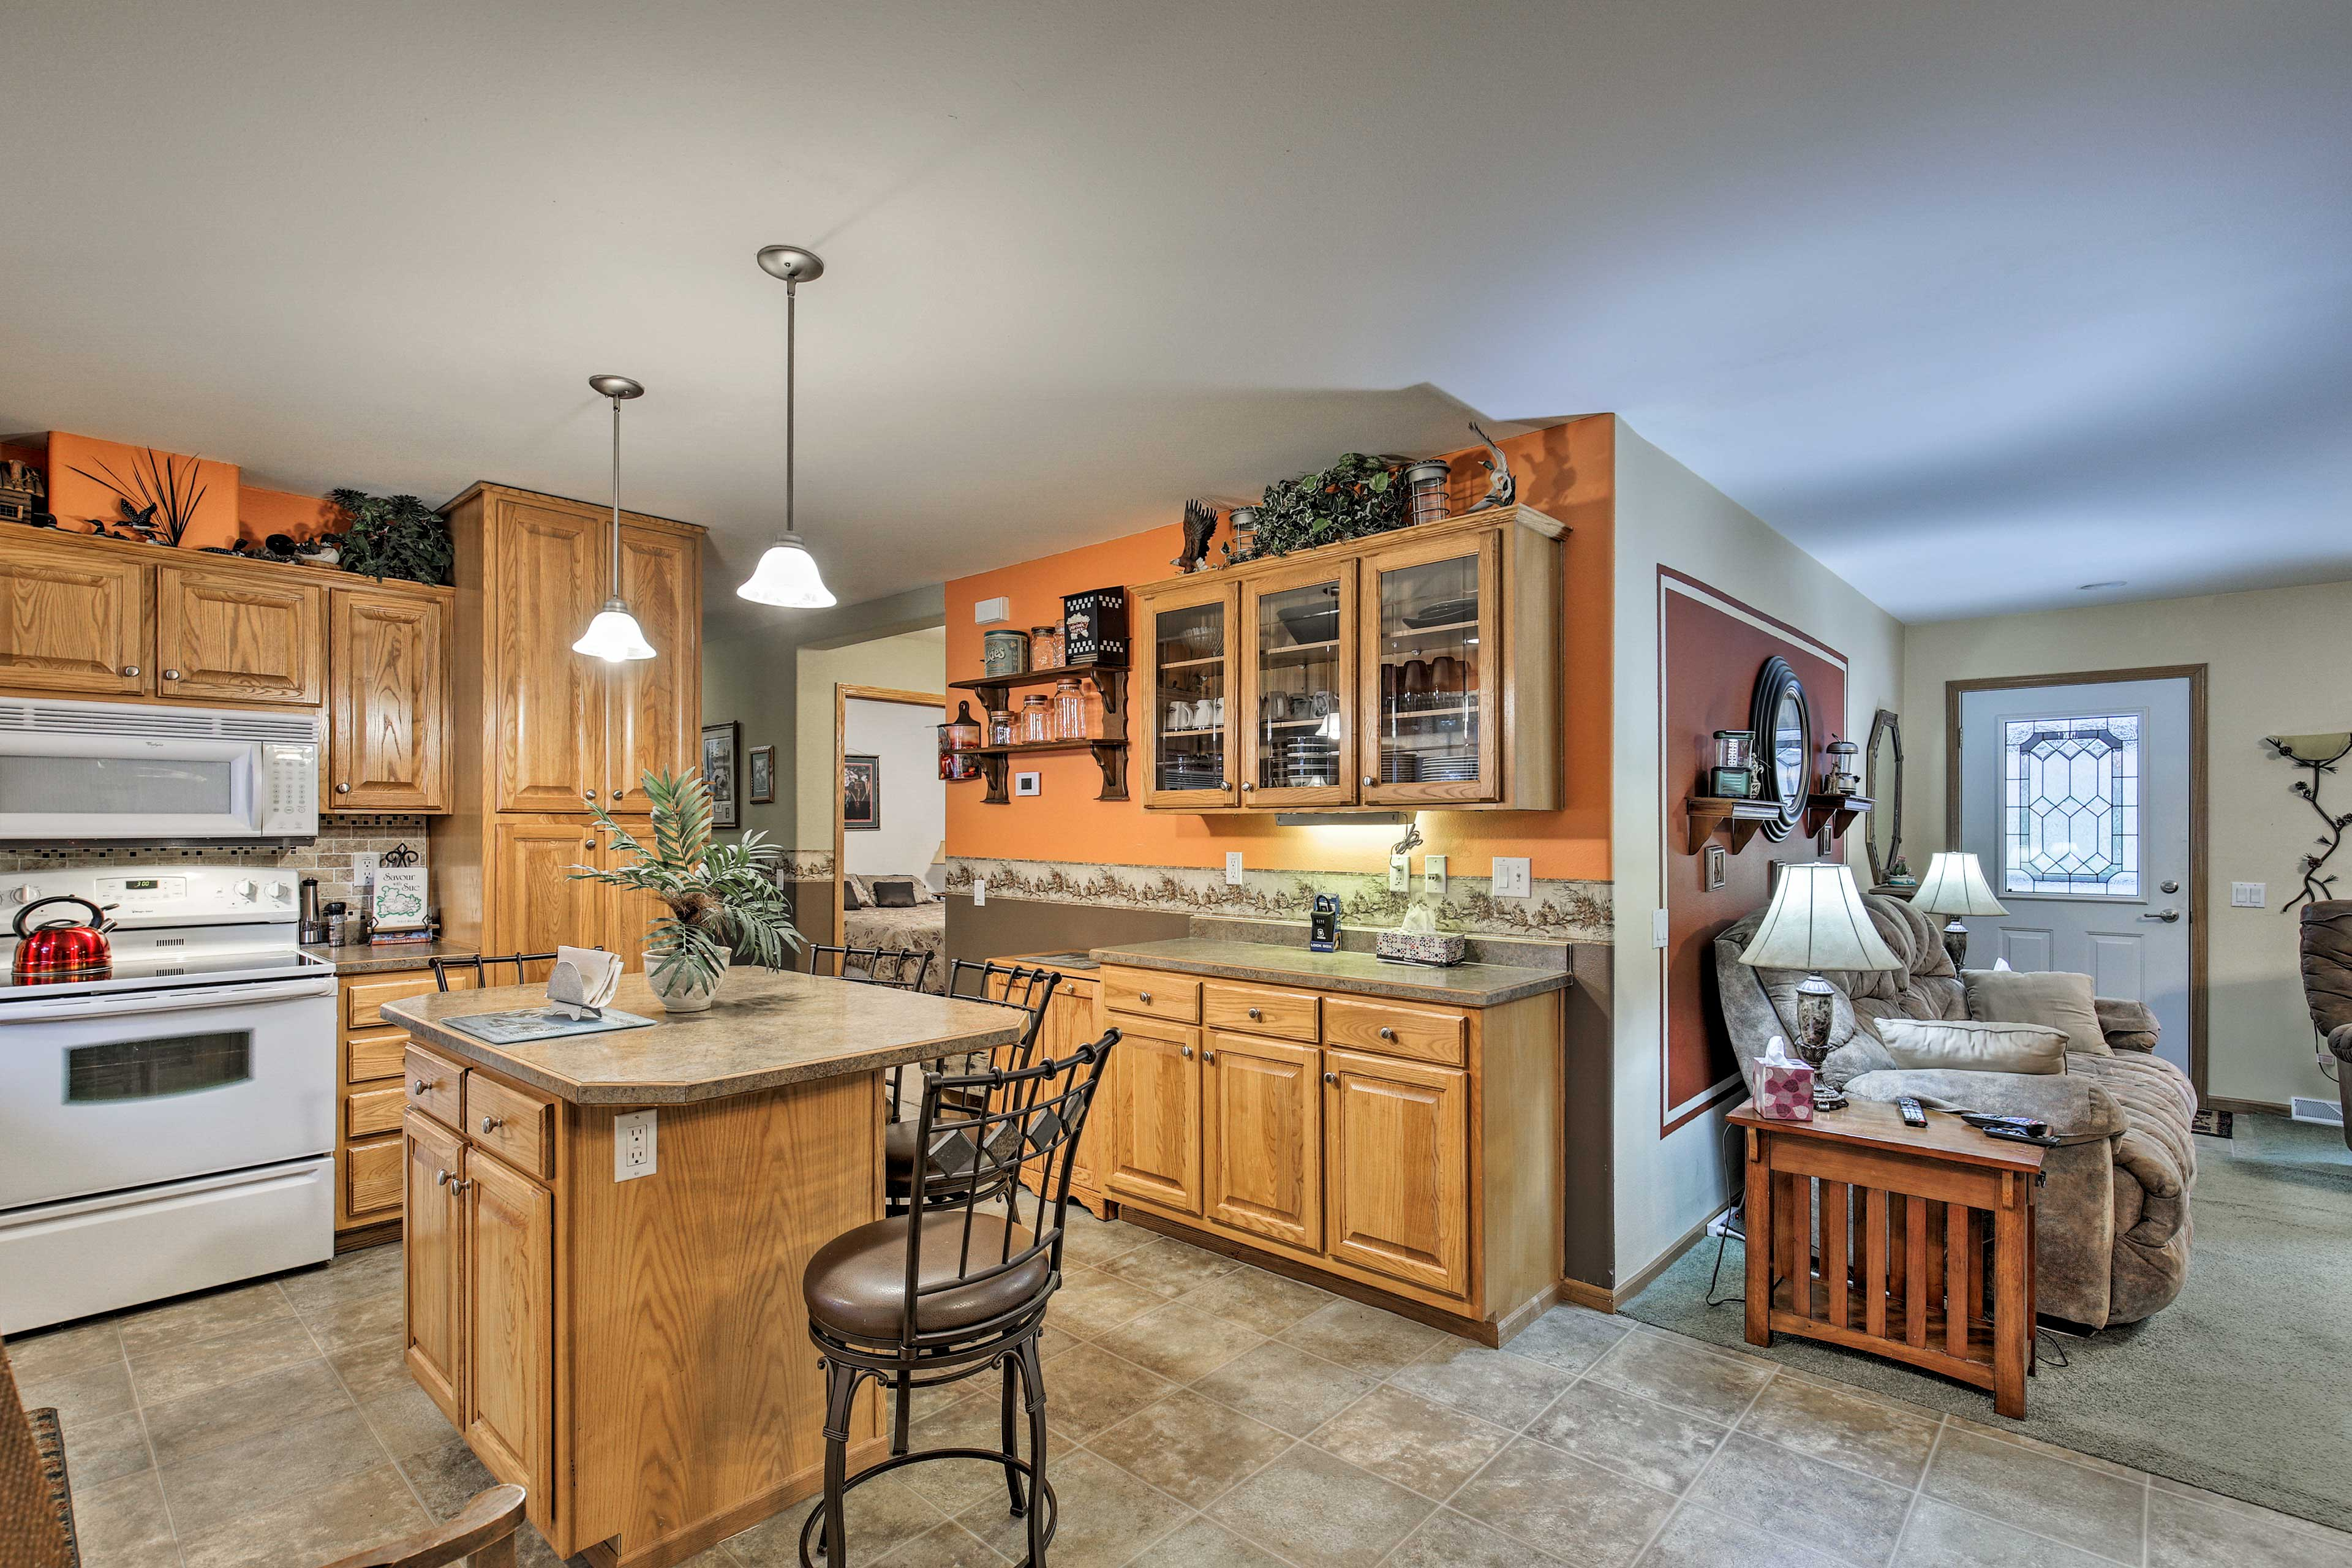 The open floor plan connects the living and kitchen areas.